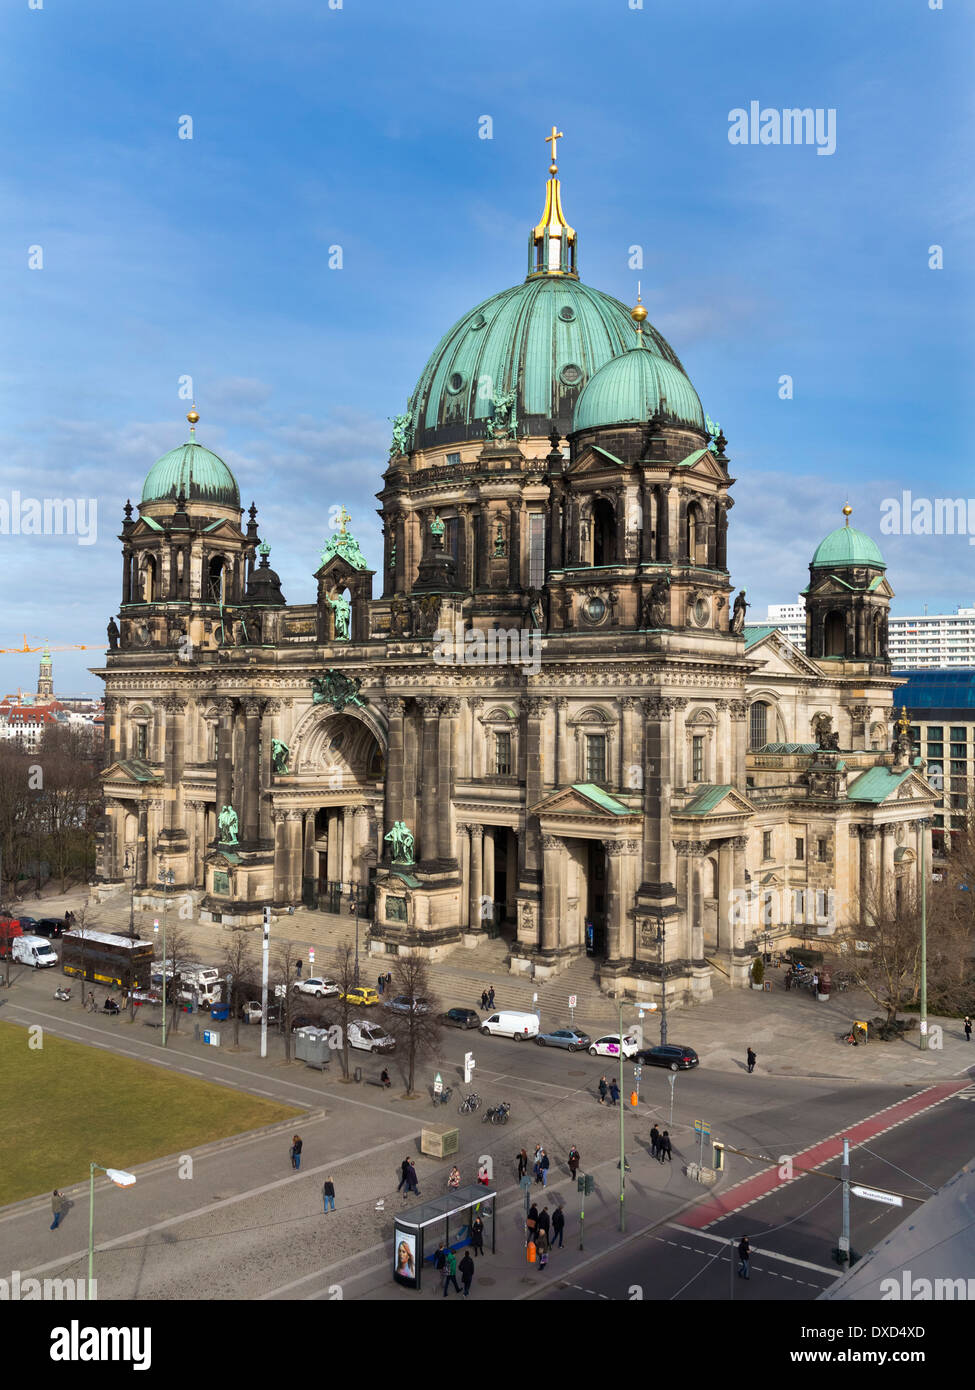 The ornate old Berliner Dom Cathedral in the city centre of Berlin Germany - Stock Image